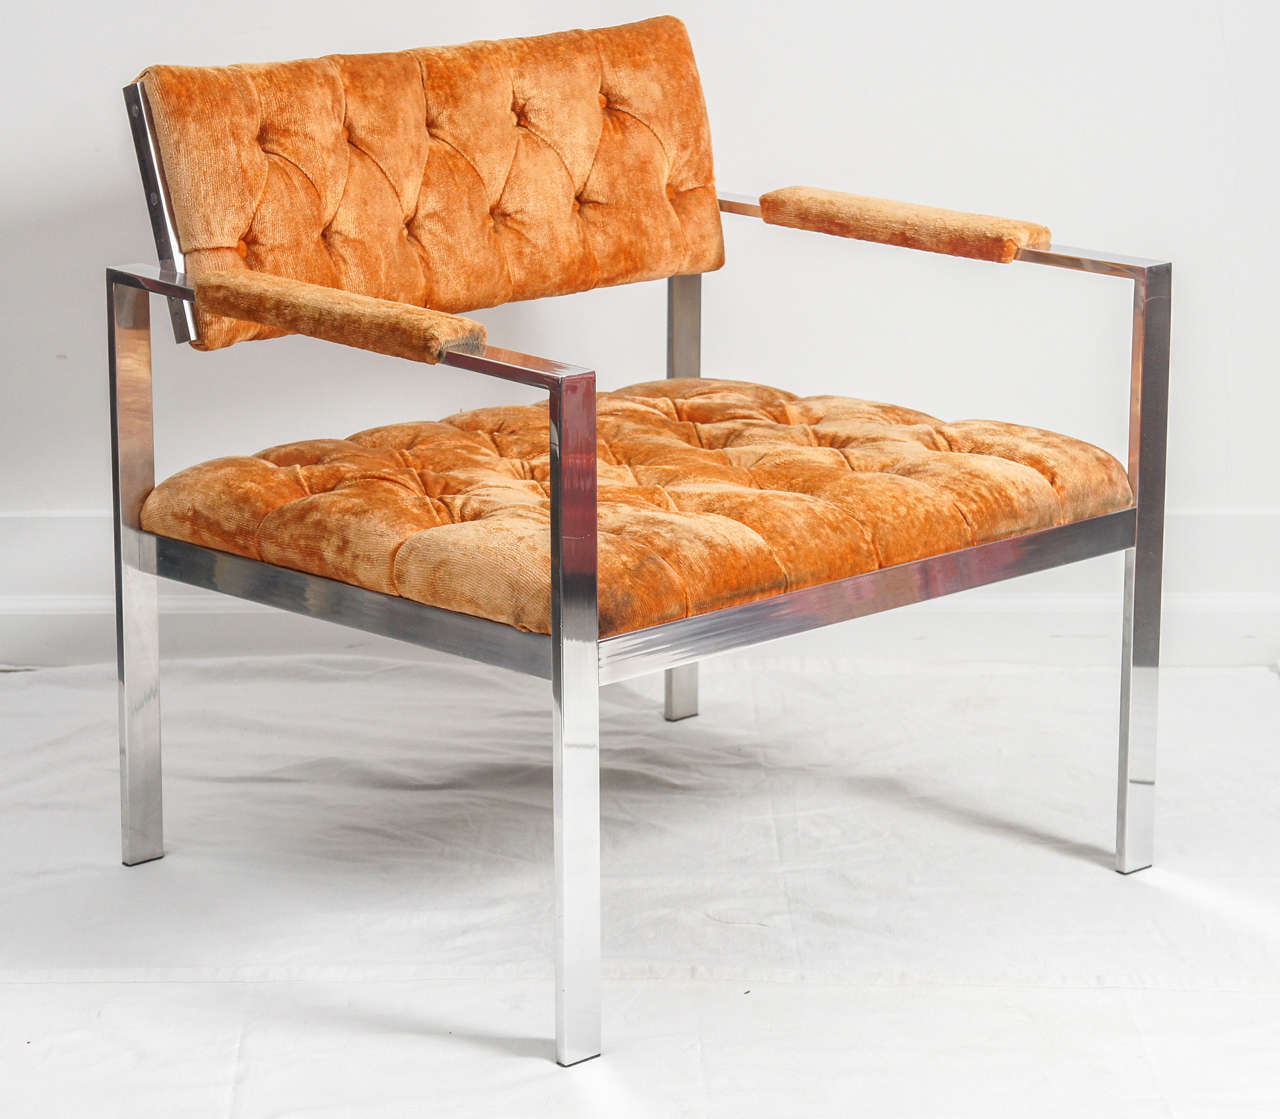 Often found listed as a Harvey Probber aluminum lounge chair and ottoman. The chair is identical to the Probber chair, other than a couple of screws. Its shown in its original orange tufted velvet. The frames are in excellent condition, with a